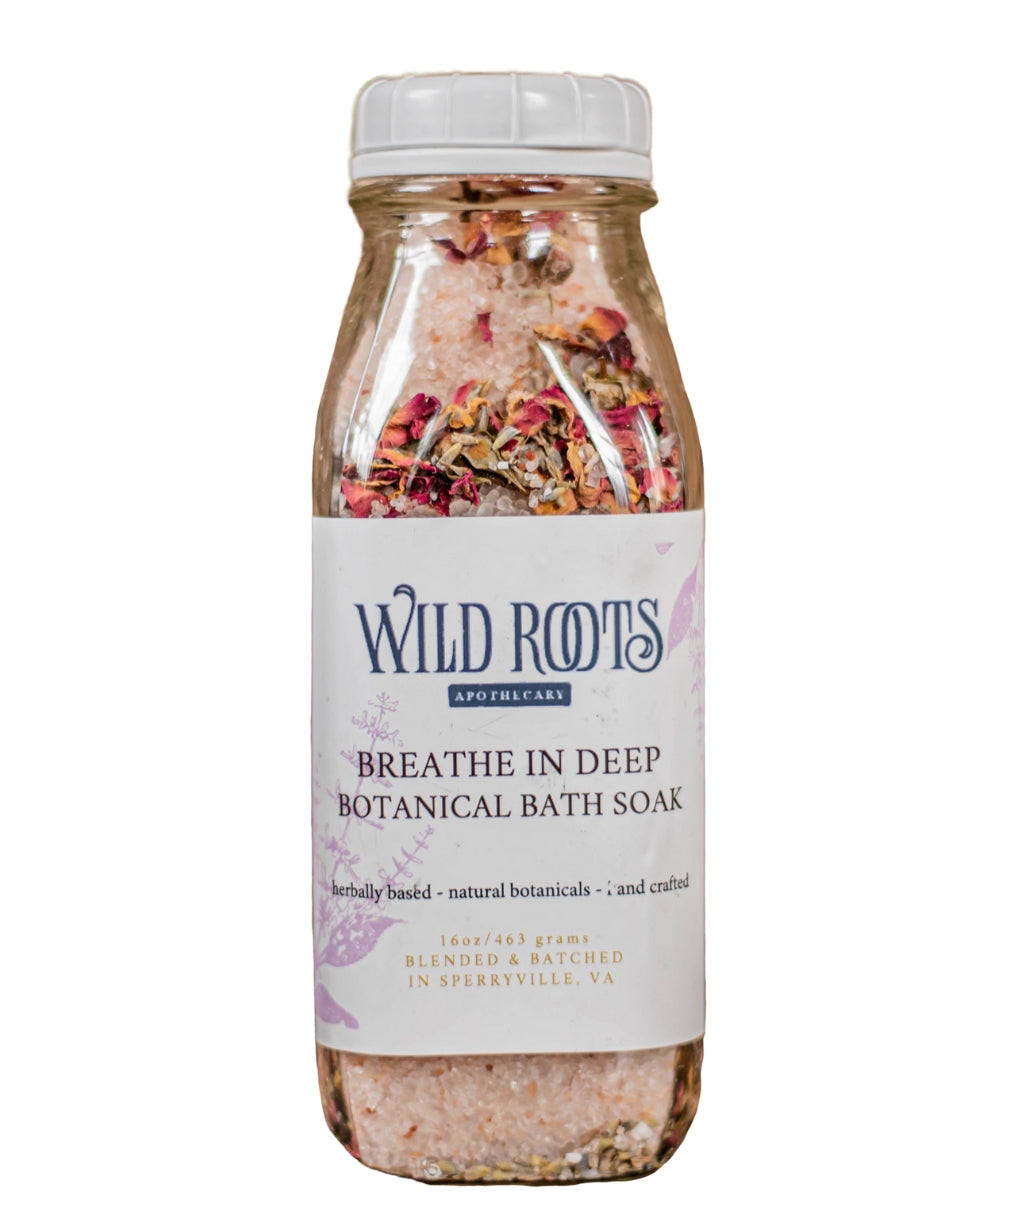 Breathe in Deep Bath Salt Soak